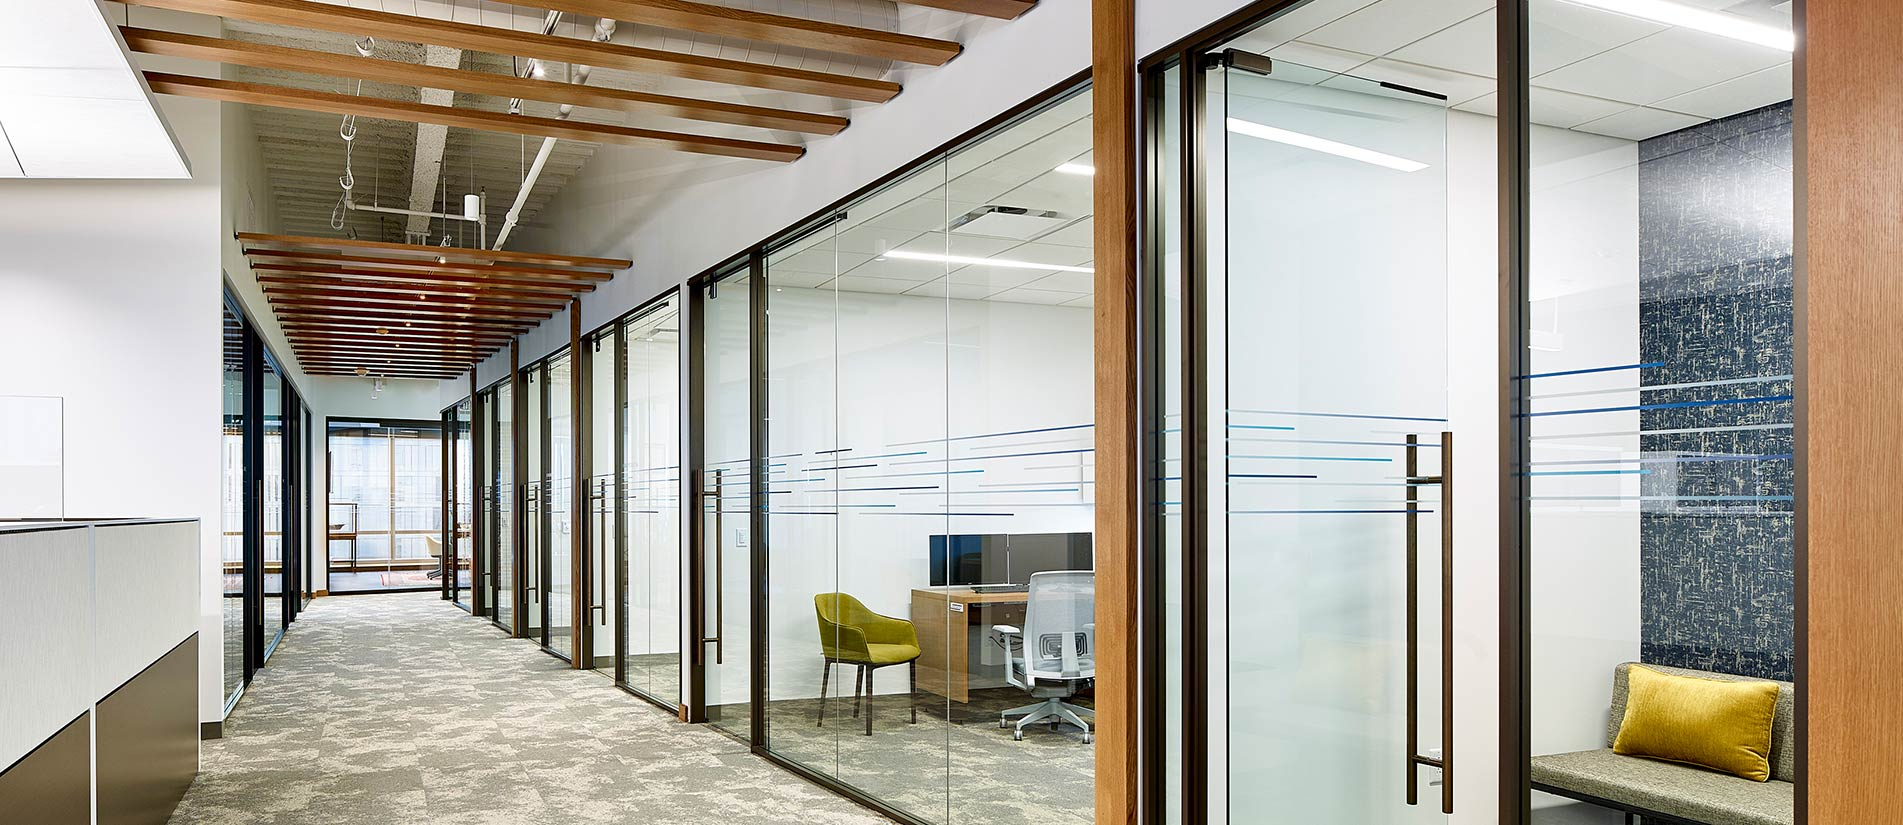 Meeting rooms and office space divided with Transwall One LP interior glass wall system